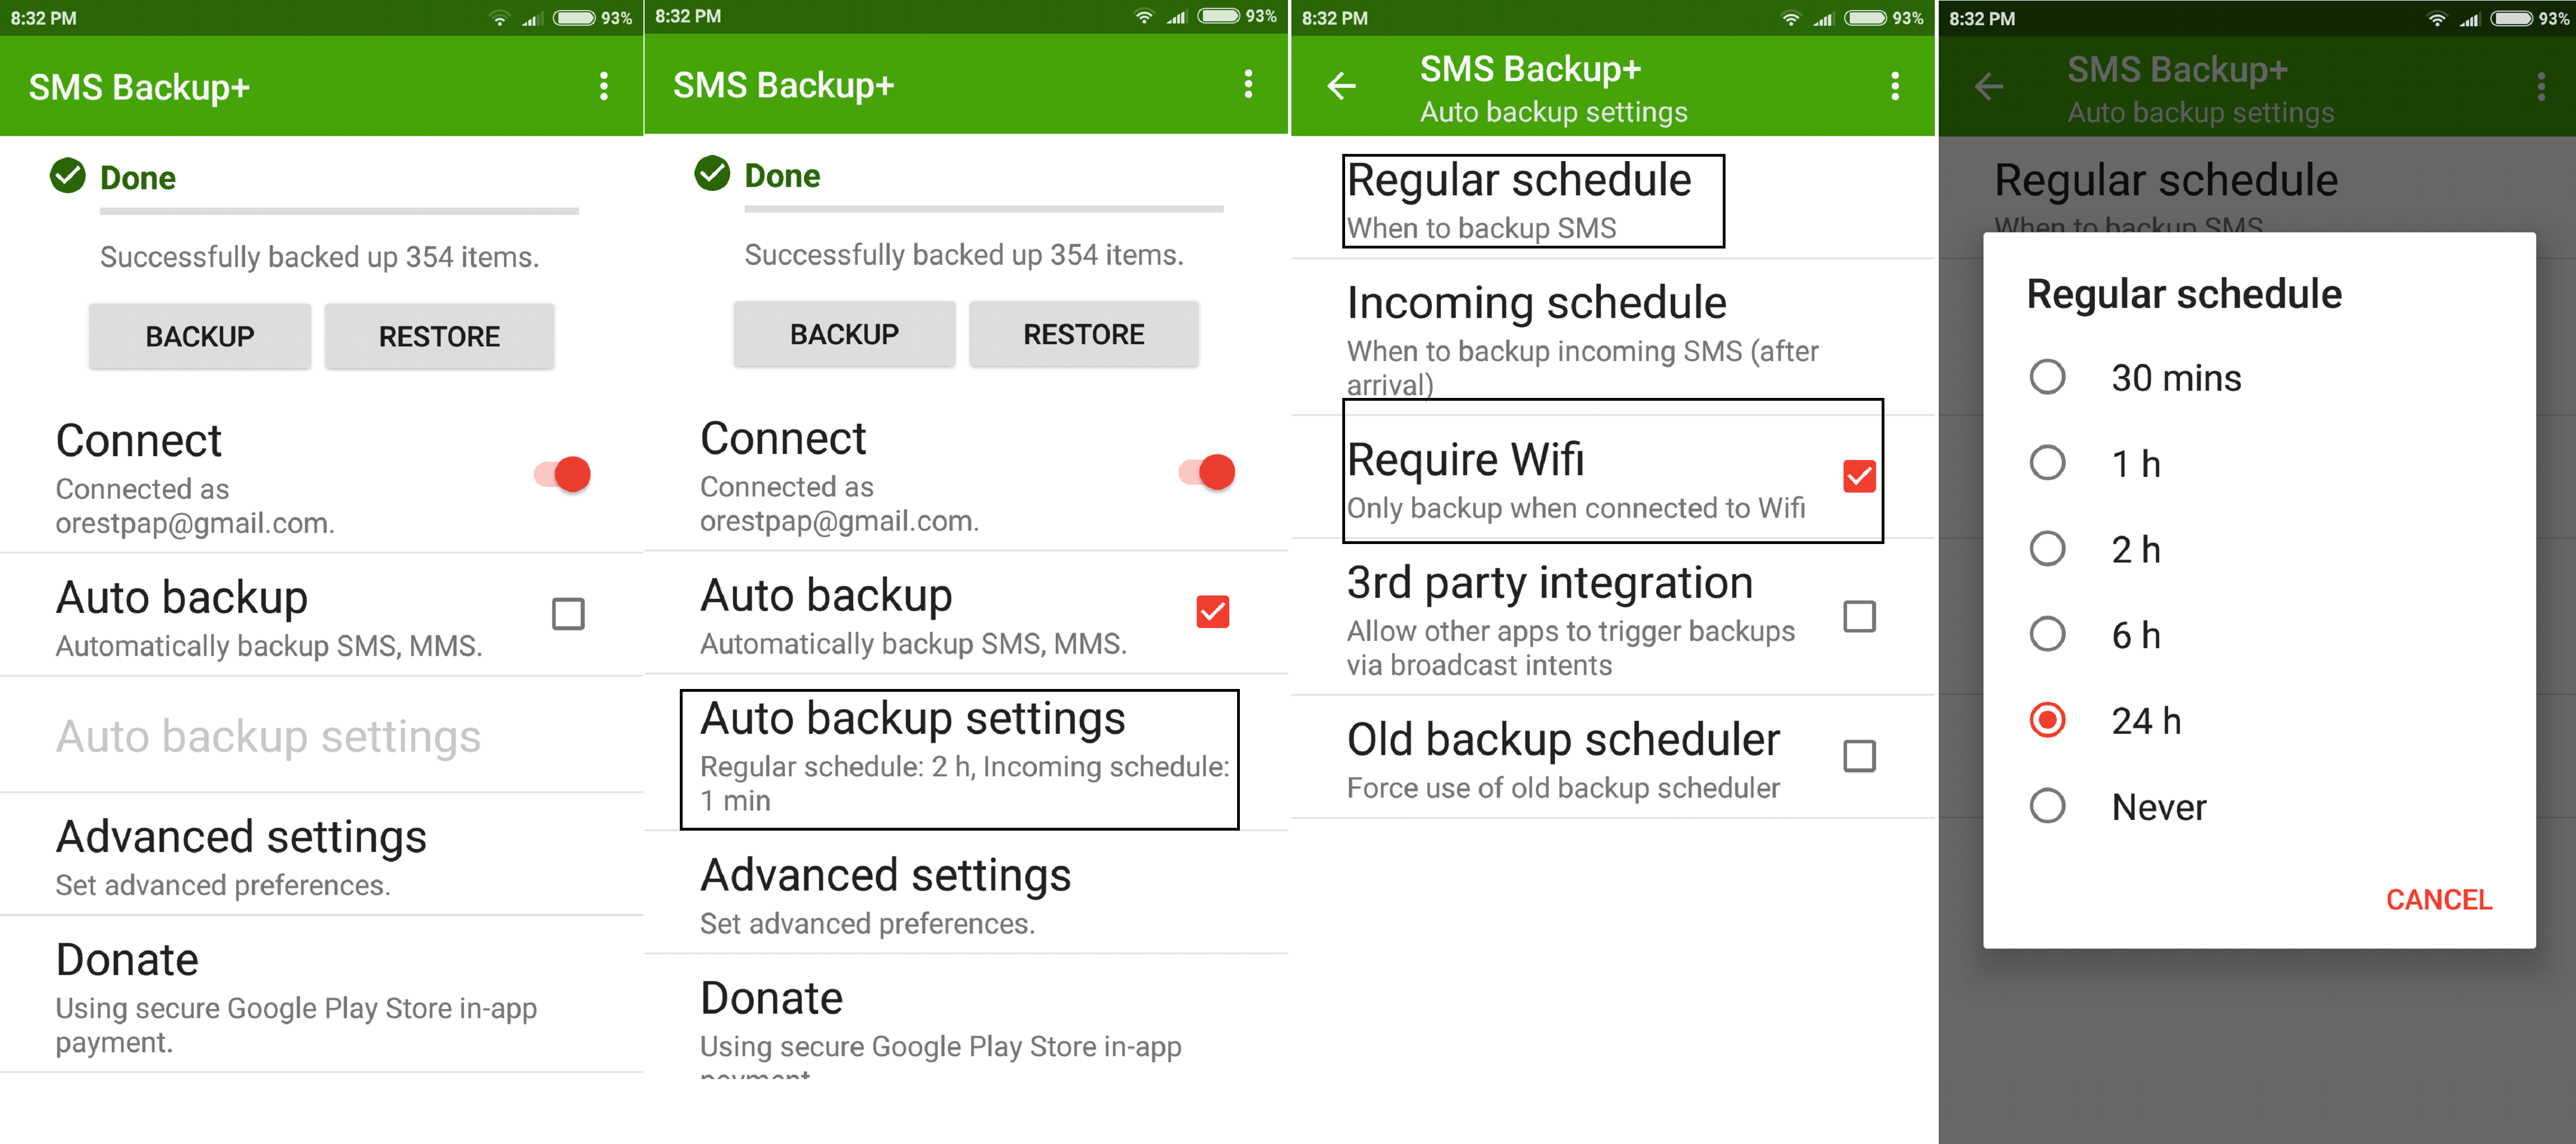 - a4 - How To Backup Text Messages From Android To Gmail